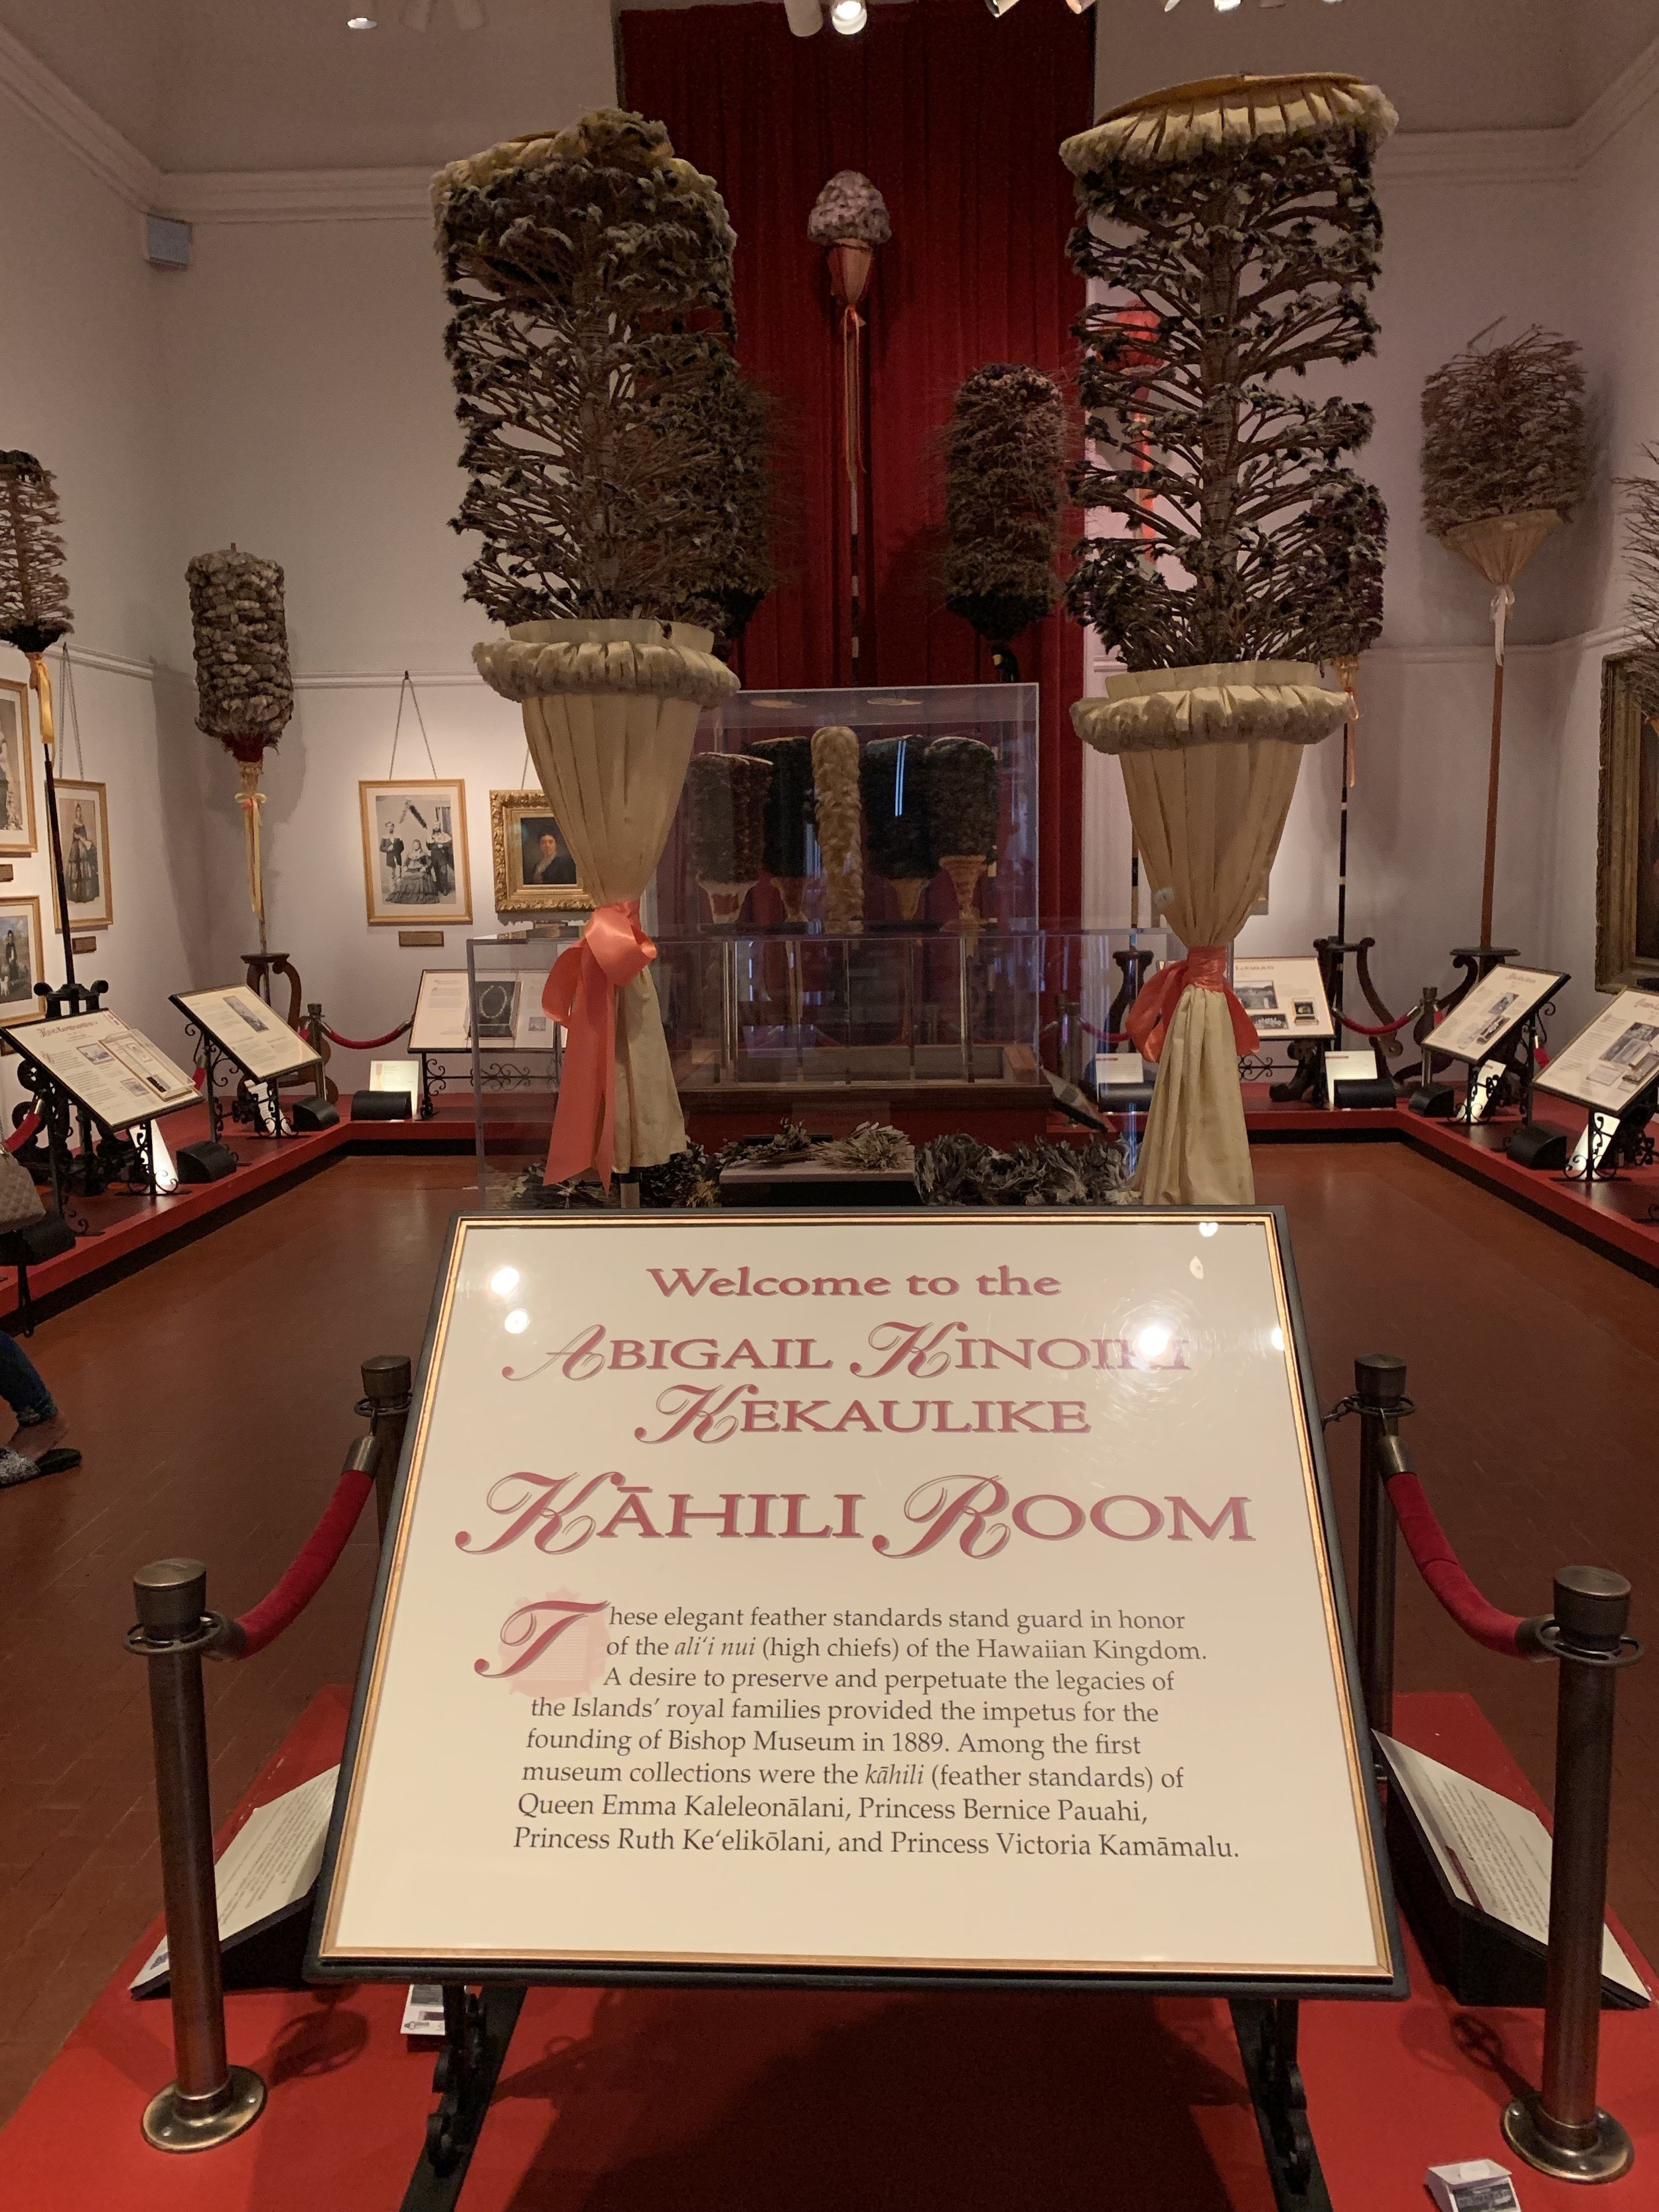 The Kahili Room at Bishop Museum